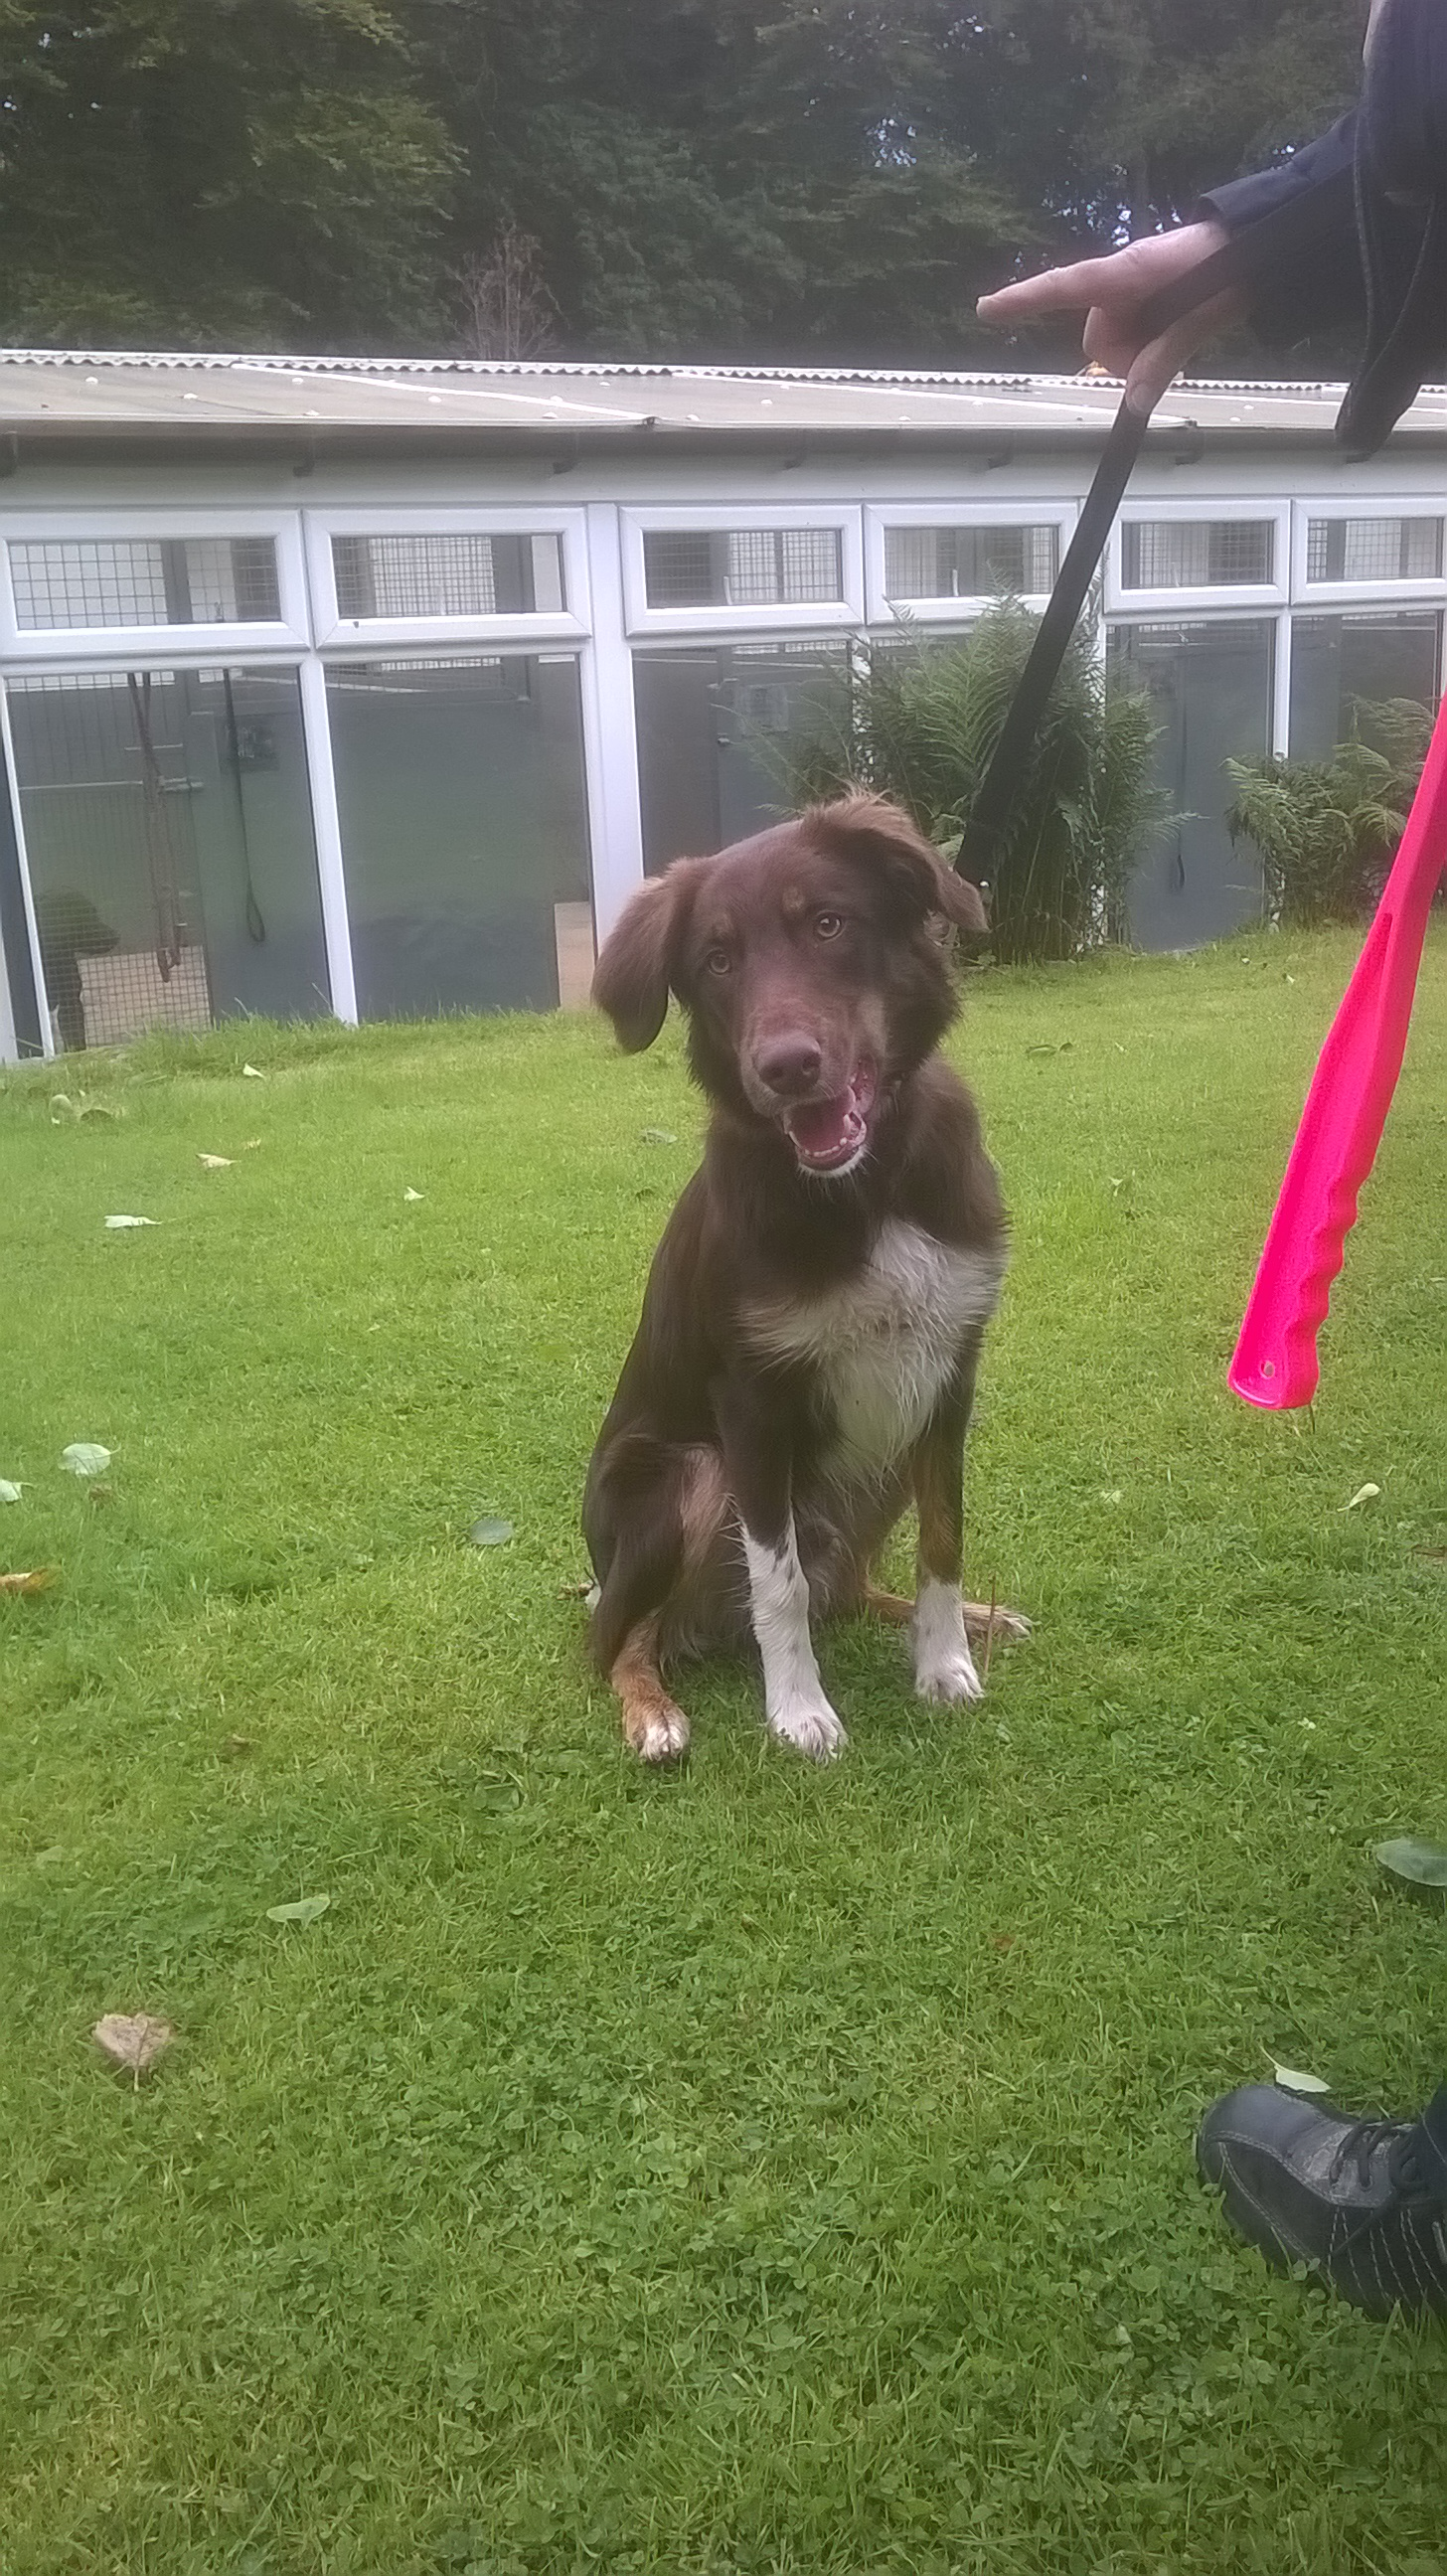 Re-homed: rusty 7 month old cross, male